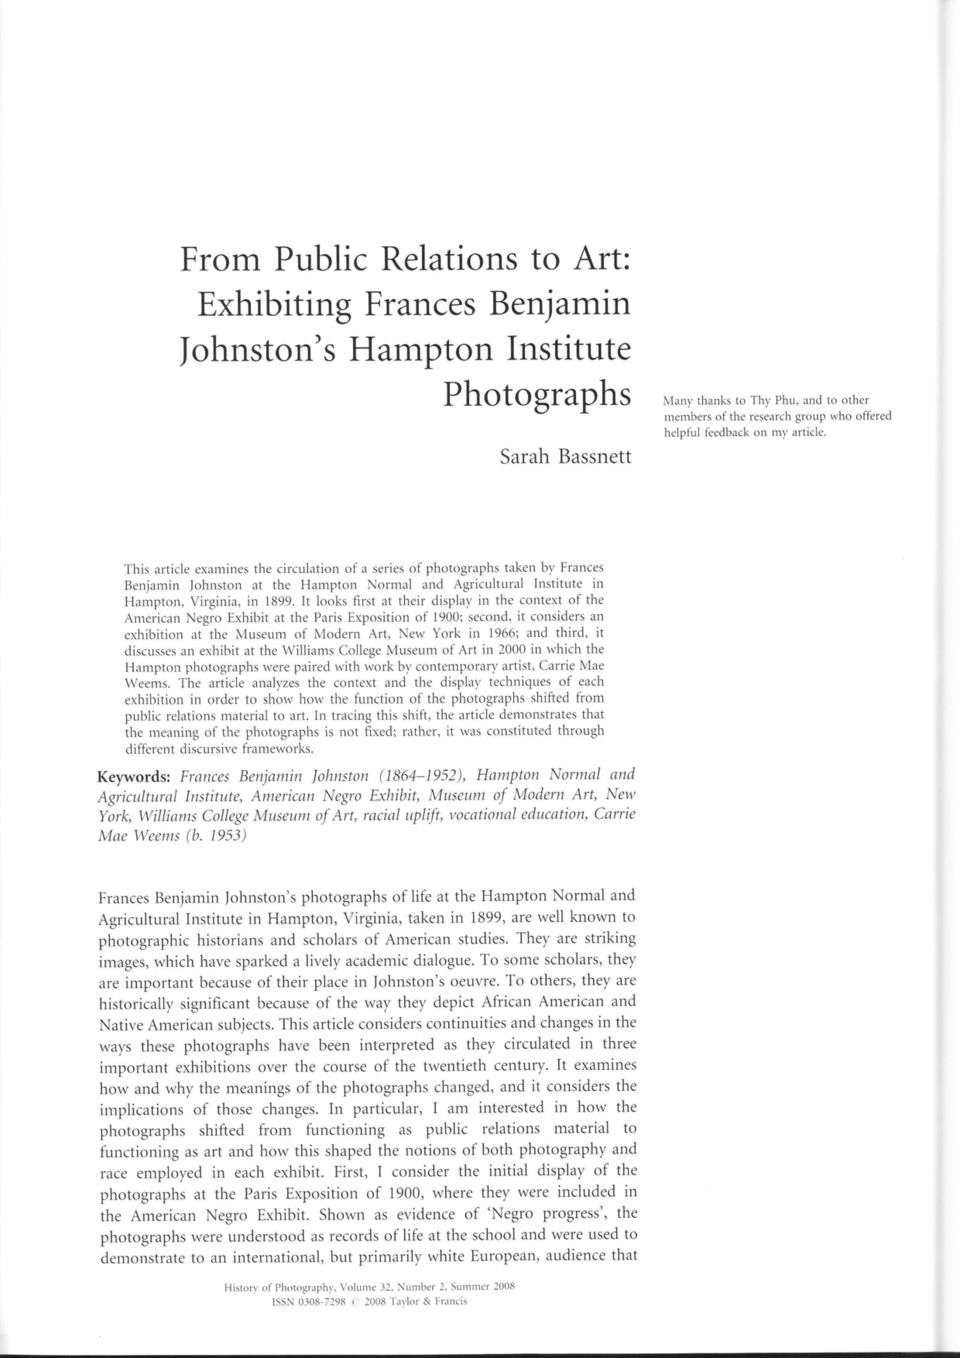 This article exatnines the circulation of a series of photographs taken by Frances Benjarnin lohnston at the Hampton Normal and Agriculturallnstitute irl Hampton, Virginia, in 1899.